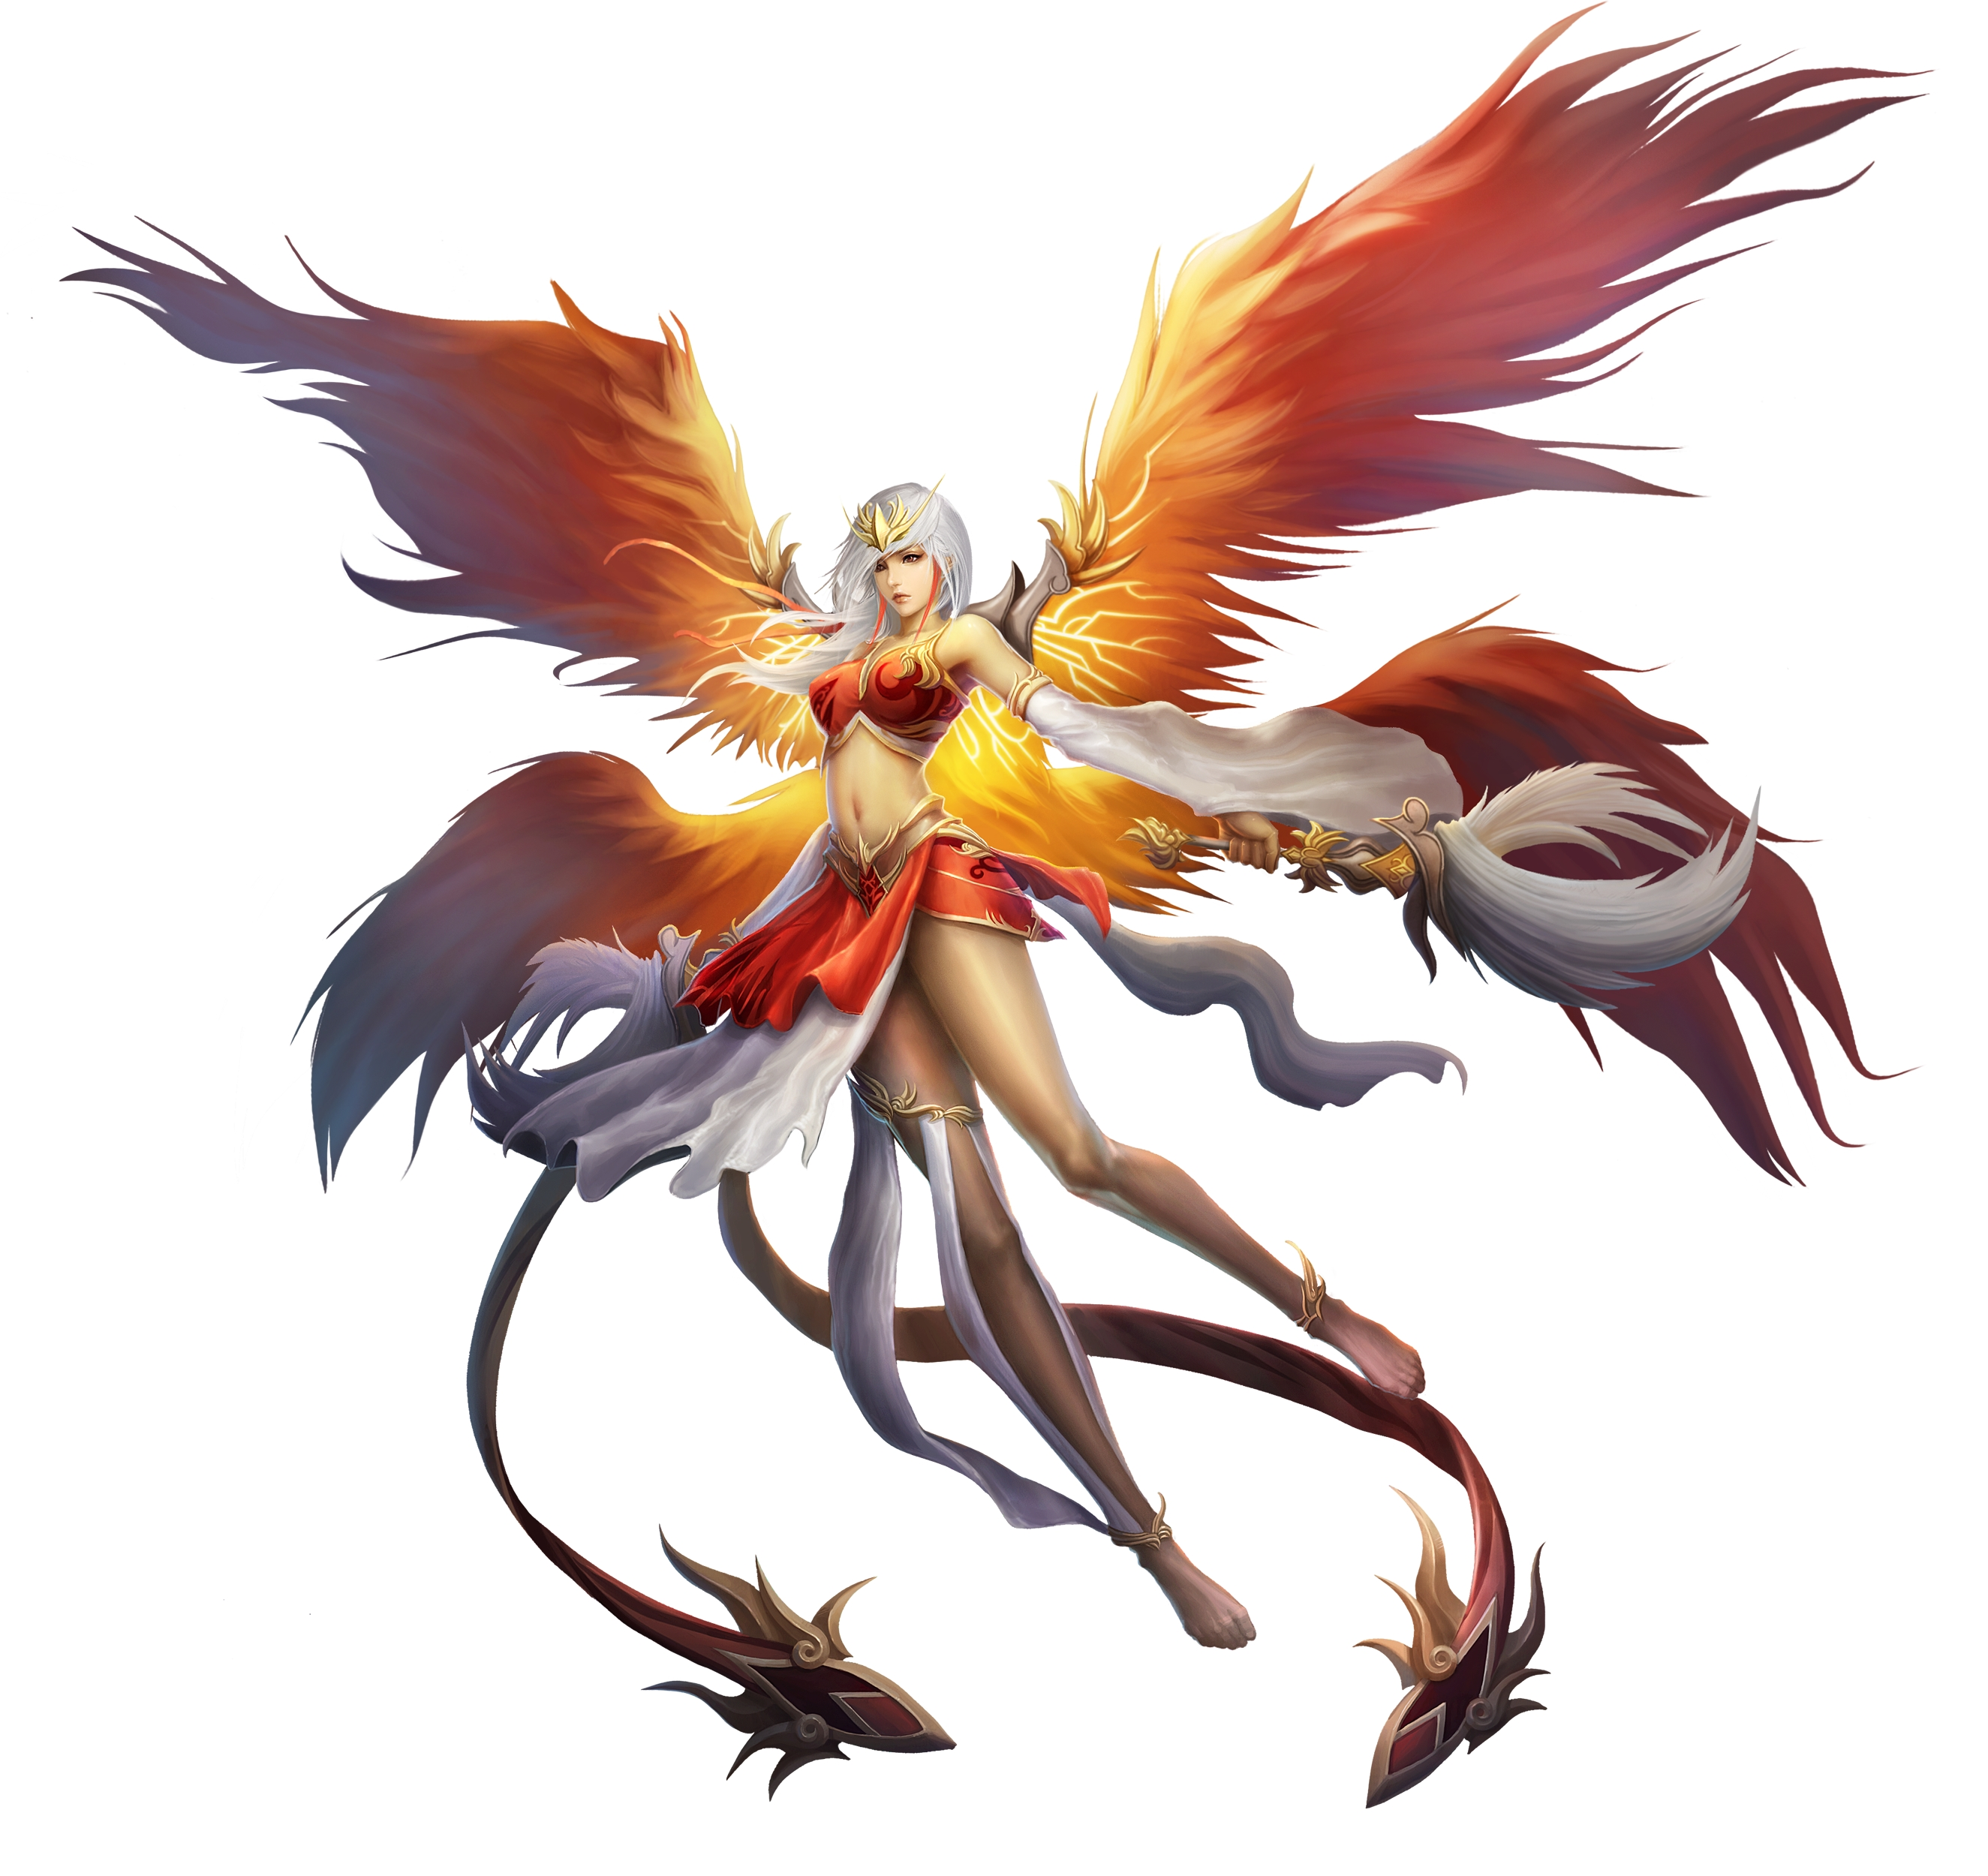 Anime Phoenix Wings Girl 0425